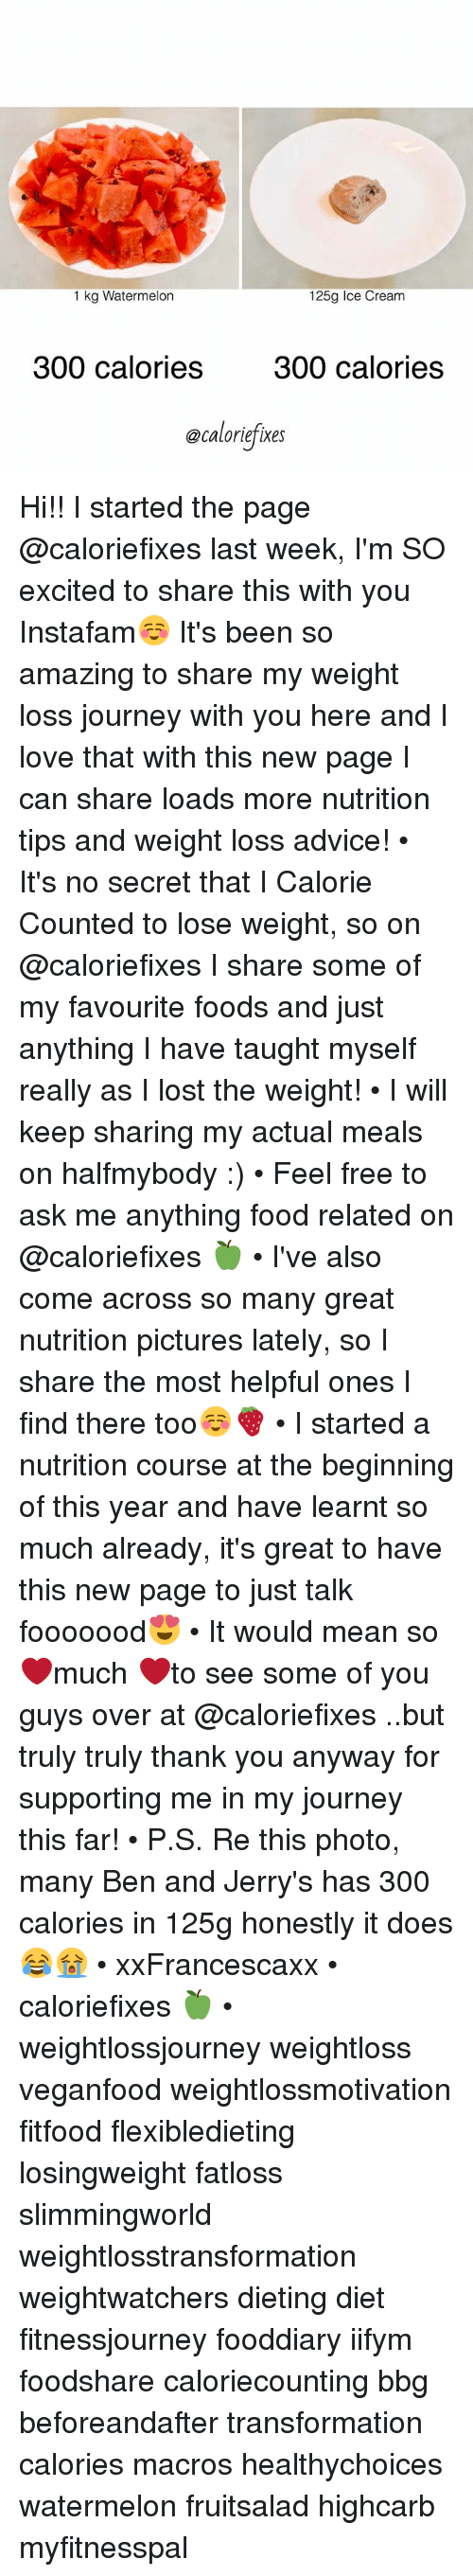 Advice, Dieting, and Food: 1 kg Watermelon  125g Ice Cream  300 calories 300 calories  @caloriefixes Hi!! I started the page @caloriefixes last week, I'm SO excited to share this with you Instafam☺️ It's been so amazing to share my weight loss journey with you here and I love that with this new page I can share loads more nutrition tips and weight loss advice! • It's no secret that I Calorie Counted to lose weight, so on @caloriefixes I share some of my favourite foods and just anything I have taught myself really as I lost the weight! • I will keep sharing my actual meals on halfmybody :) • Feel free to ask me anything food related on @caloriefixes 🍏 • I've also come across so many great nutrition pictures lately, so I share the most helpful ones I find there too☺️🍓 • I started a nutrition course at the beginning of this year and have learnt so much already, it's great to have this new page to just talk fooooood😍 • It would mean so ❤️much ❤️to see some of you guys over at @caloriefixes ..but truly truly thank you anyway for supporting me in my journey this far! • P.S. Re this photo, many Ben and Jerry's has 300 calories in 125g <as many people were unsure on @caloriefixes !> honestly it does😂😭 • xxFrancescaxx • caloriefixes 🍏 • weightlossjourney weightloss veganfood weightlossmotivation fitfood flexibledieting losingweight fatloss slimmingworld weightlosstransformation weightwatchers dieting diet fitnessjourney fooddiary iifym foodshare caloriecounting bbg beforeandafter transformation calories macros healthychoices watermelon fruitsalad highcarb myfitnesspal